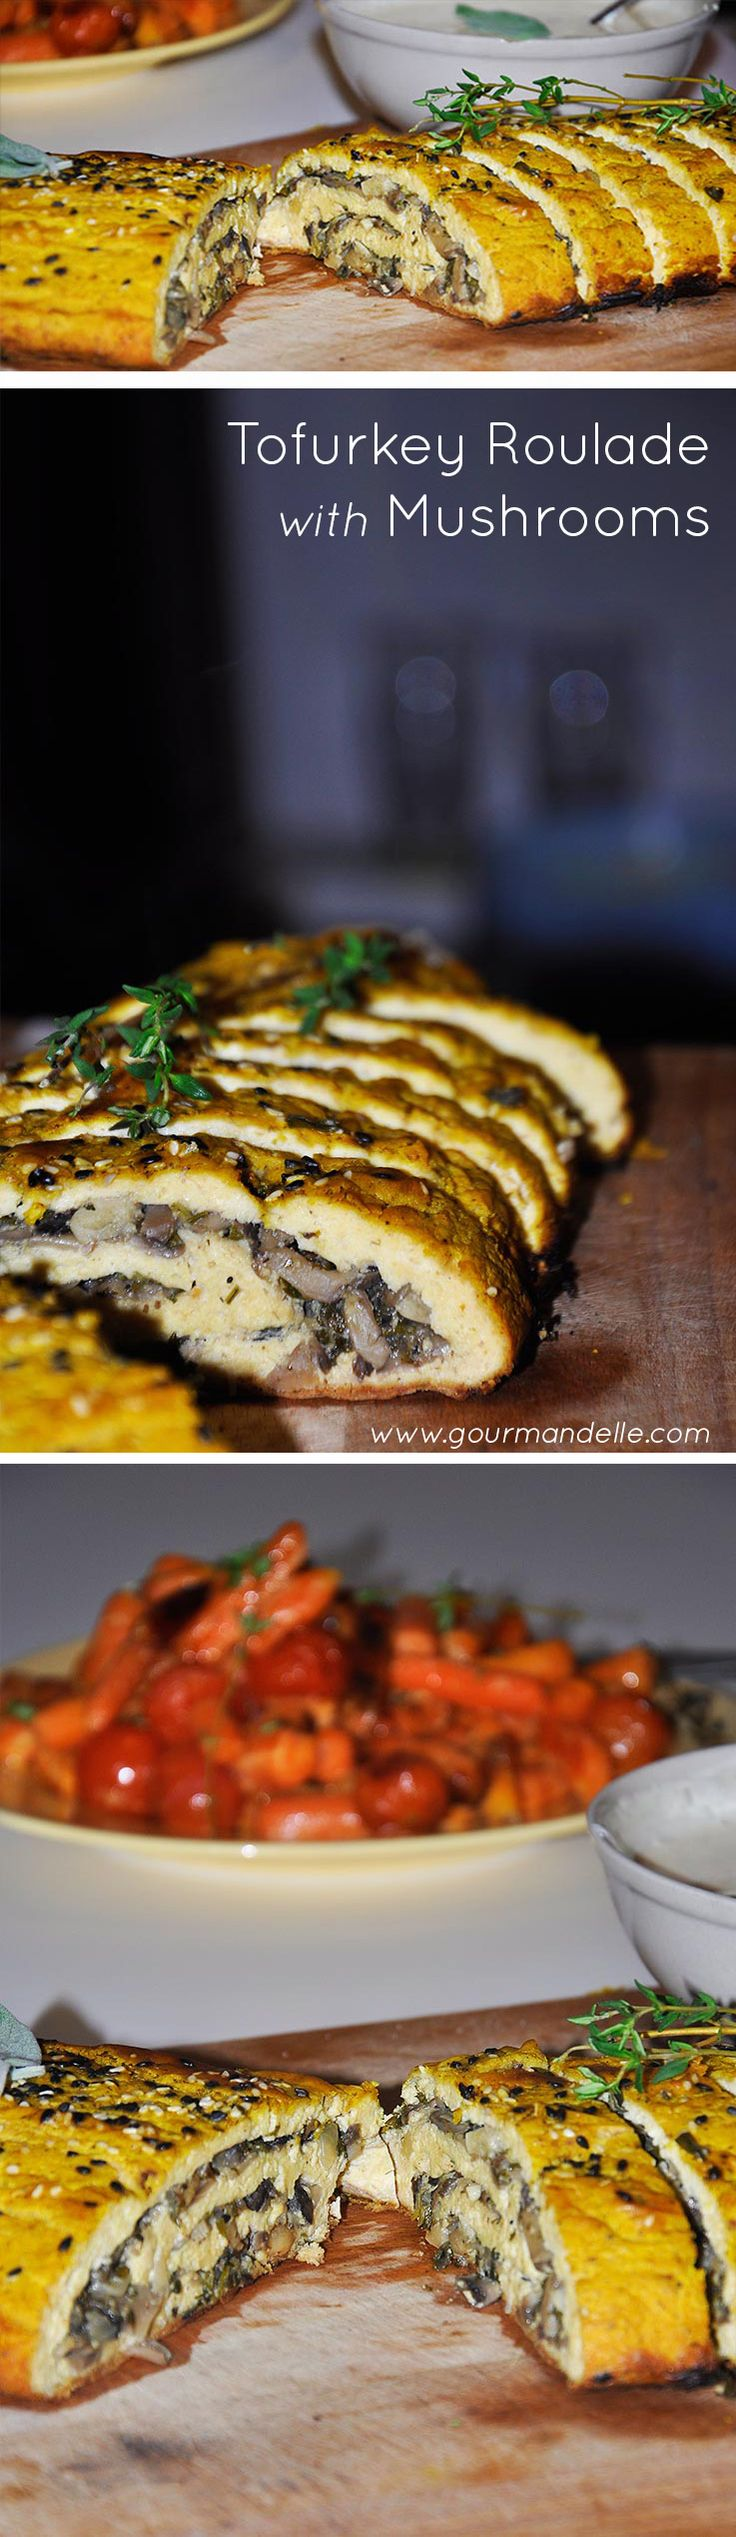 Tofurkey Roulade with Mushrooms...one of my best recipes so far!  | Gourmandelle.com